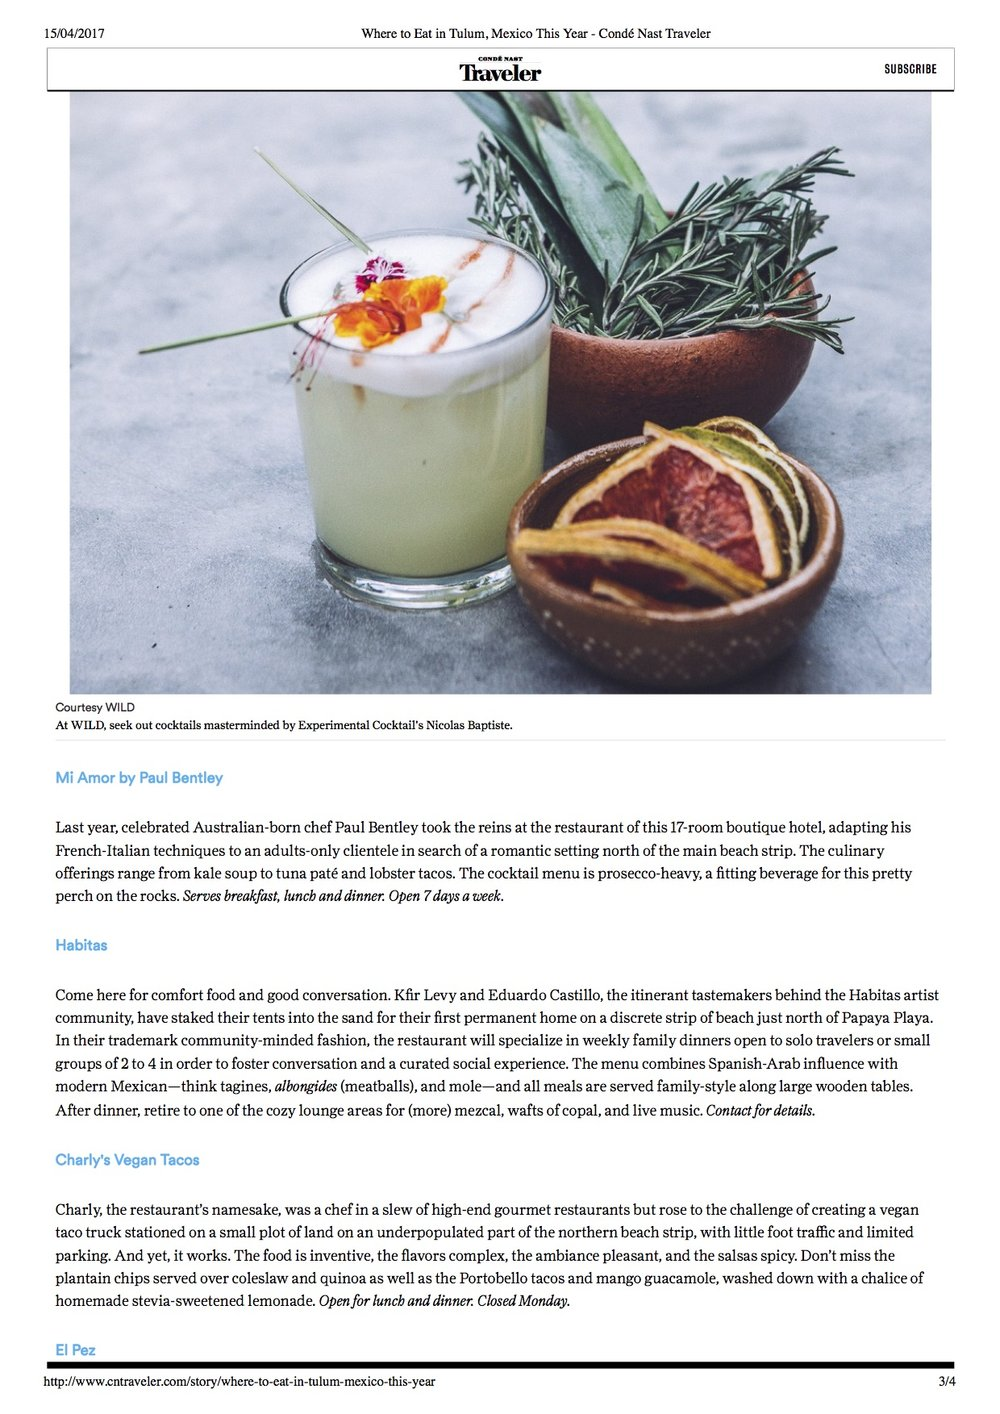 Where to Eat in Tulum, Mexico This Year - Condé Nast Traveler copy 3.jpg